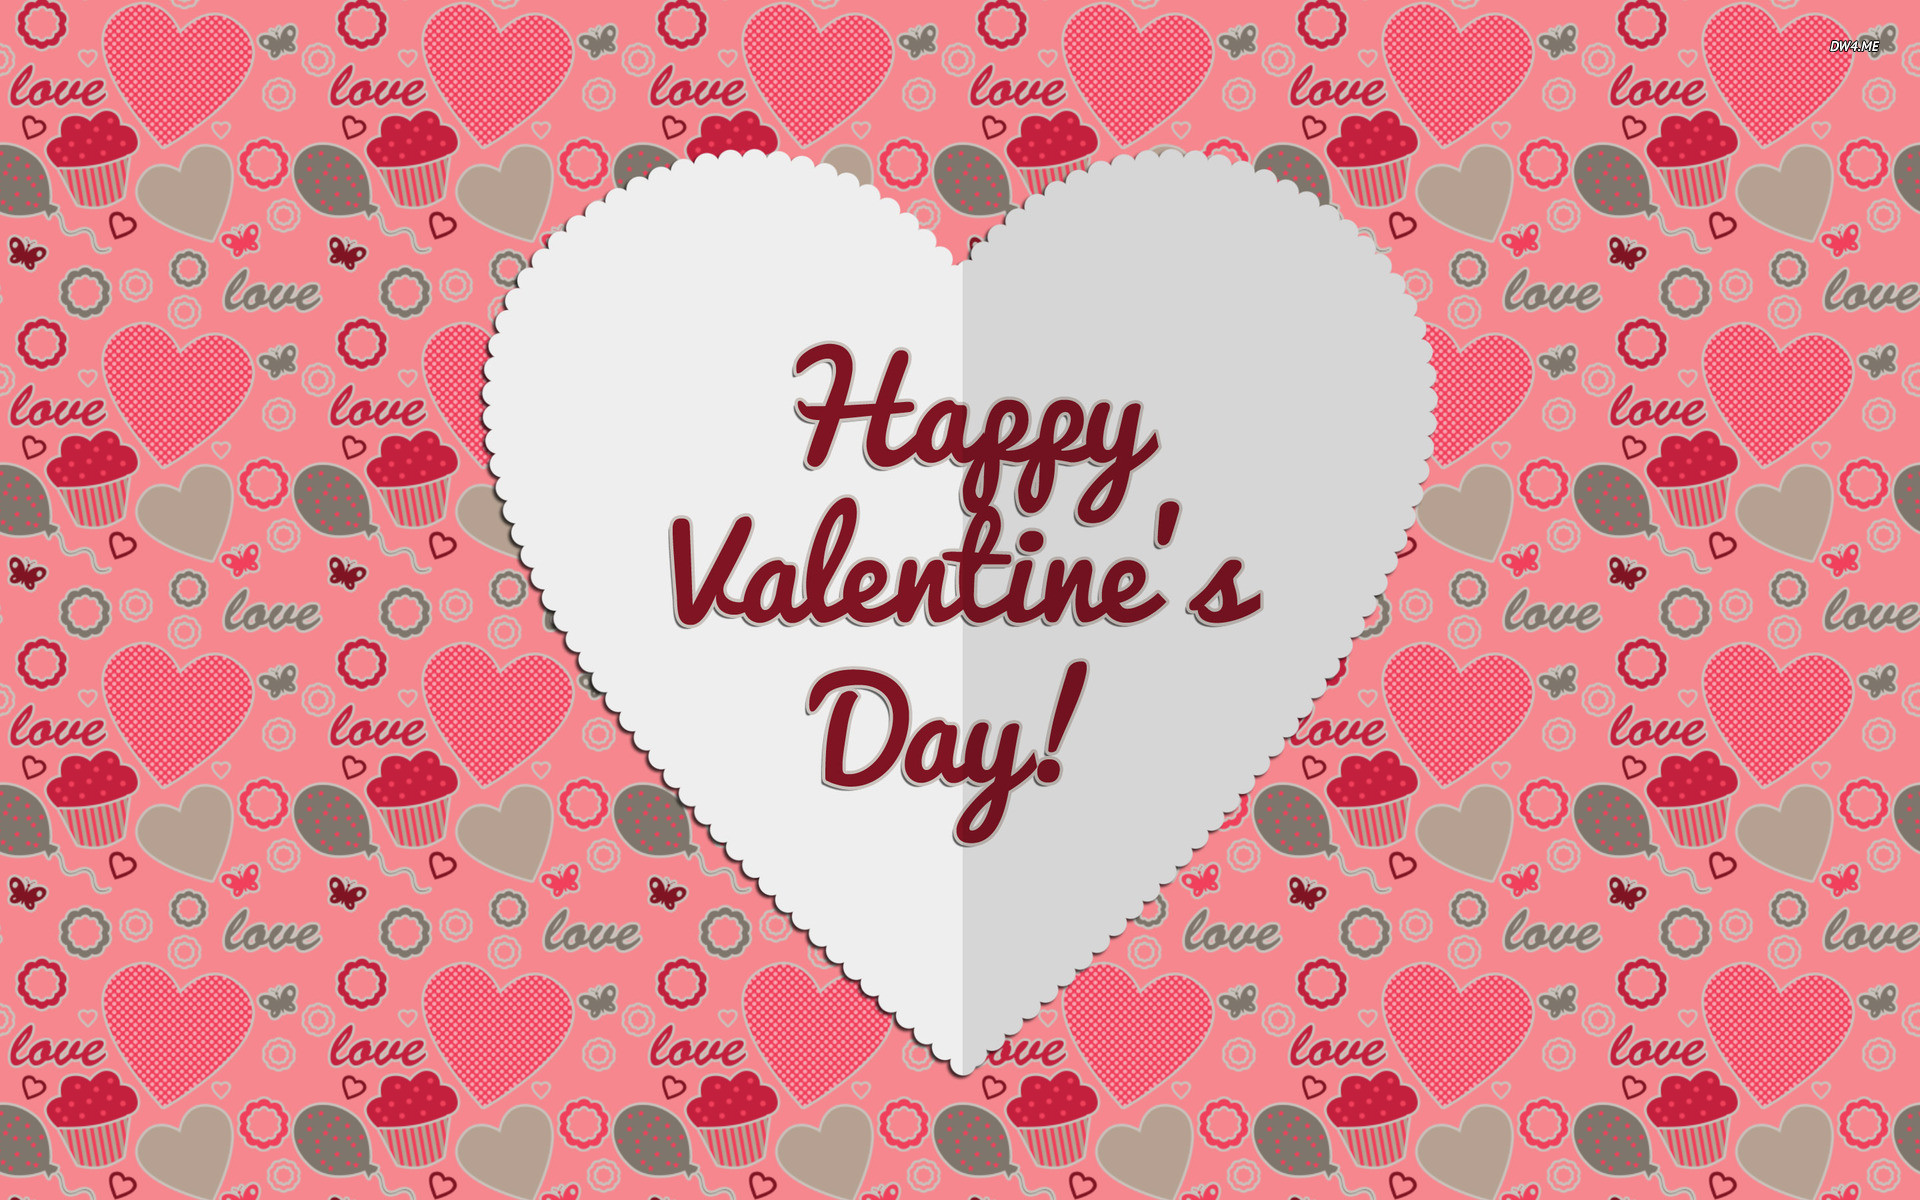 1920x1200 Valentine s Day Wallpaper Valentines Day Holidays (82 Wallpapers) – HD  Wallpapers